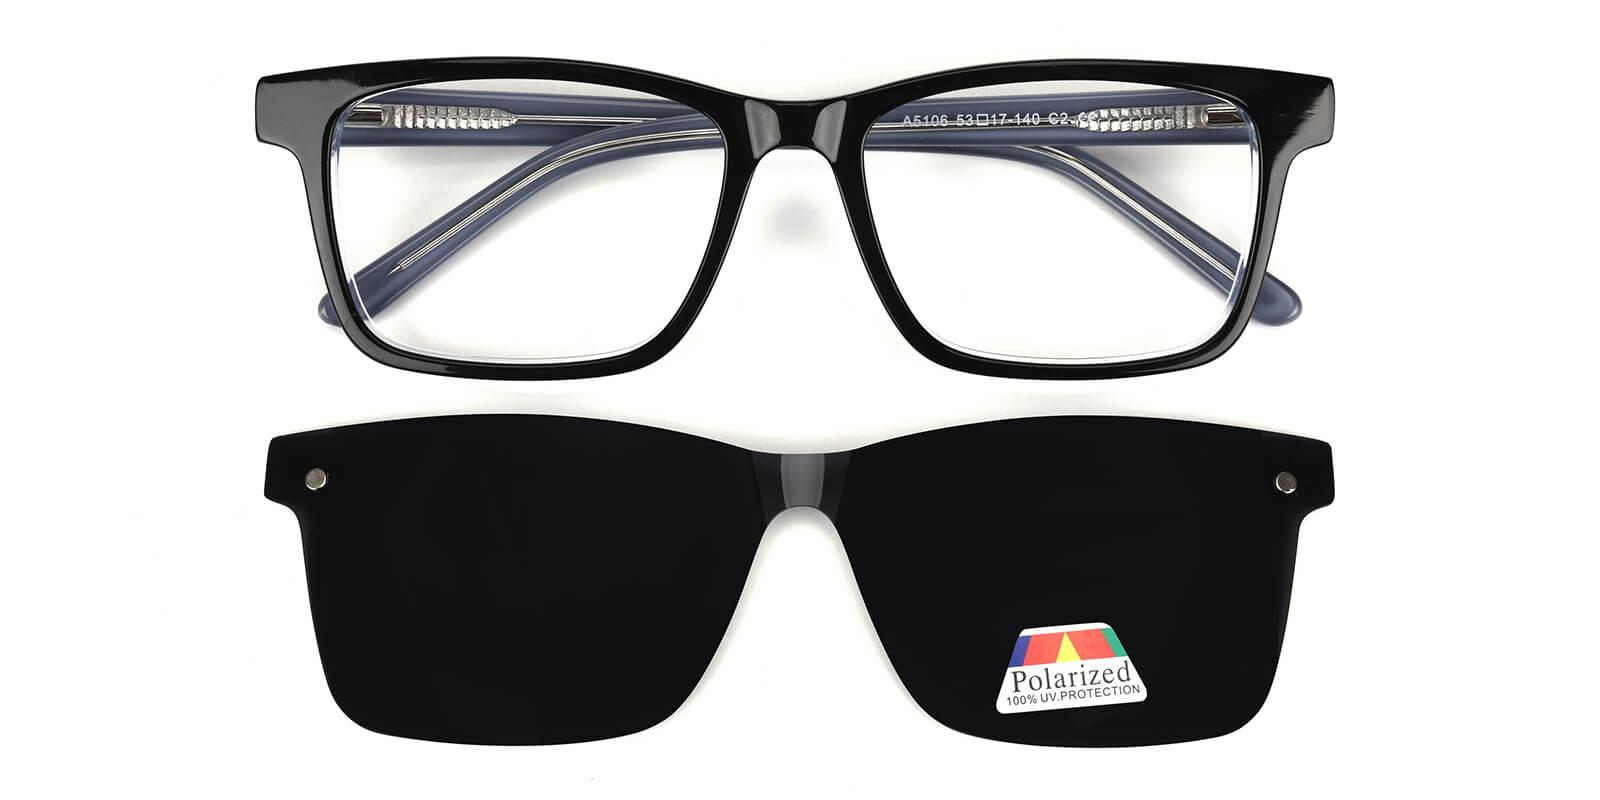 Richard-Multicolor-Square-Acetate-Eyeglasses-detail